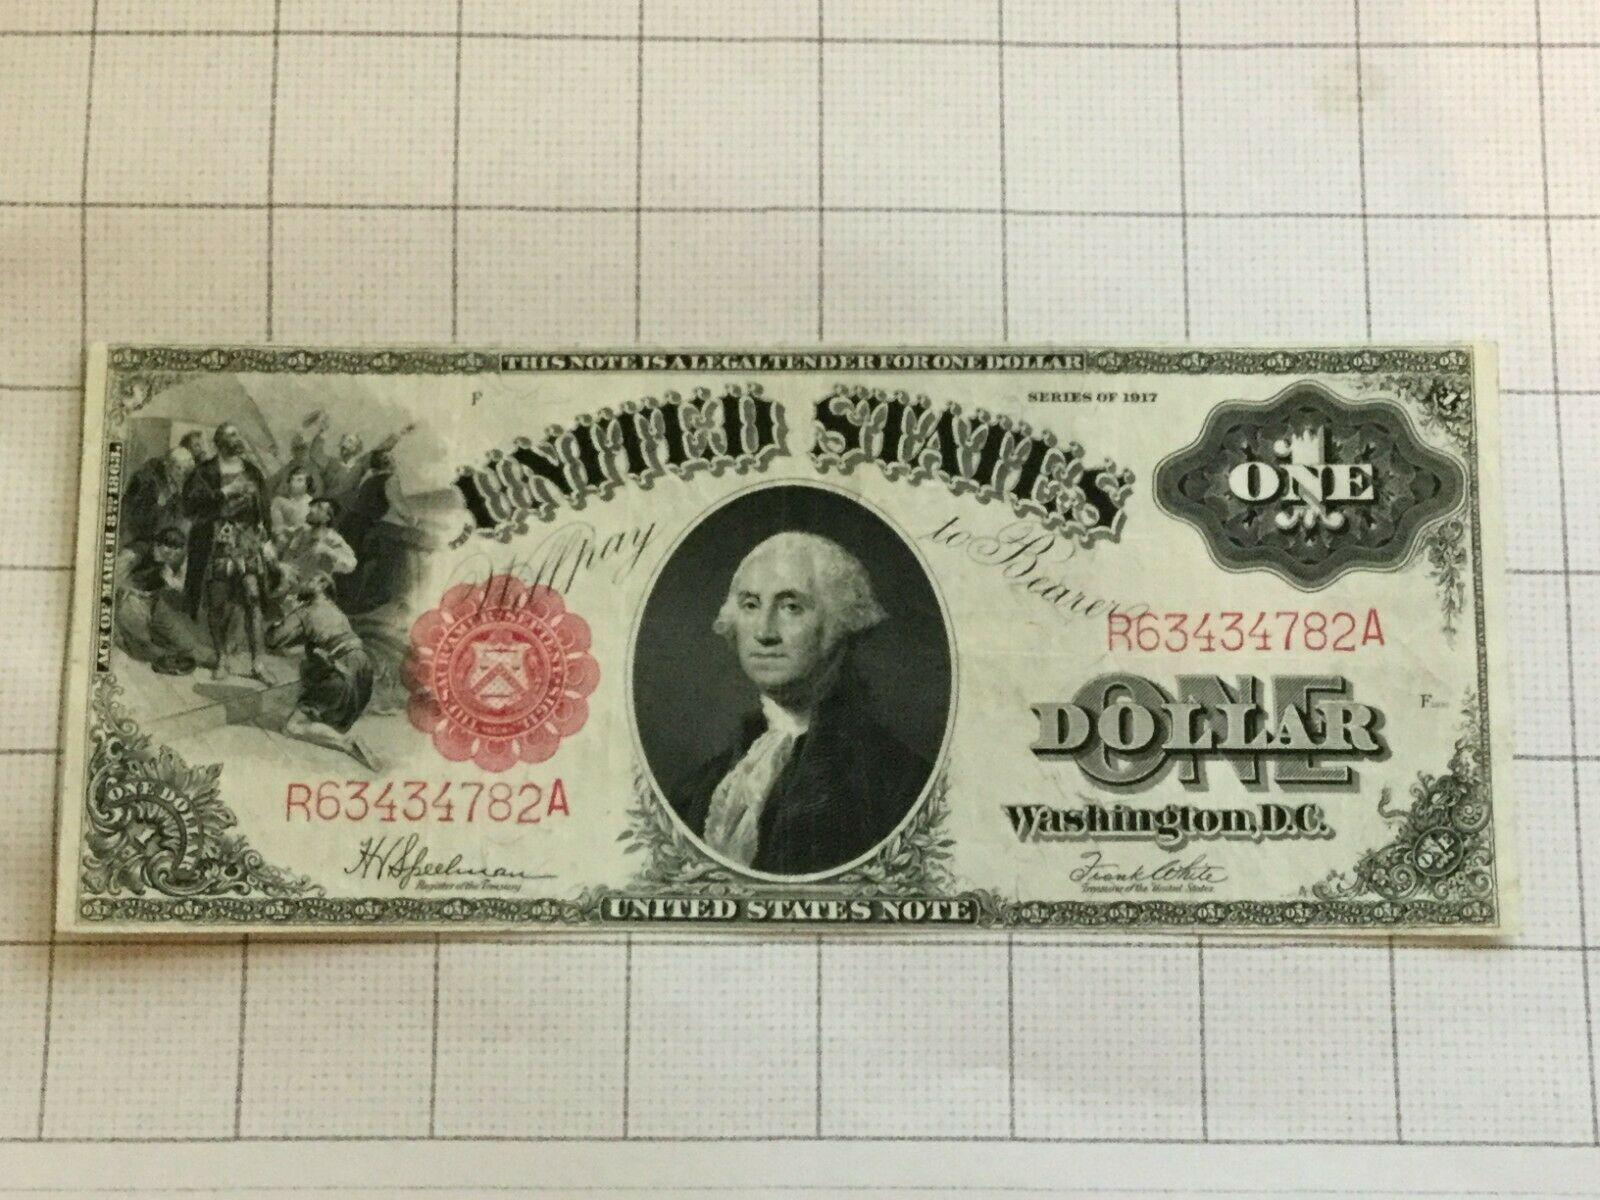 Primary image for 1917 Series $1 One Dollar US Large Legal Tender Red Seal Bank Note